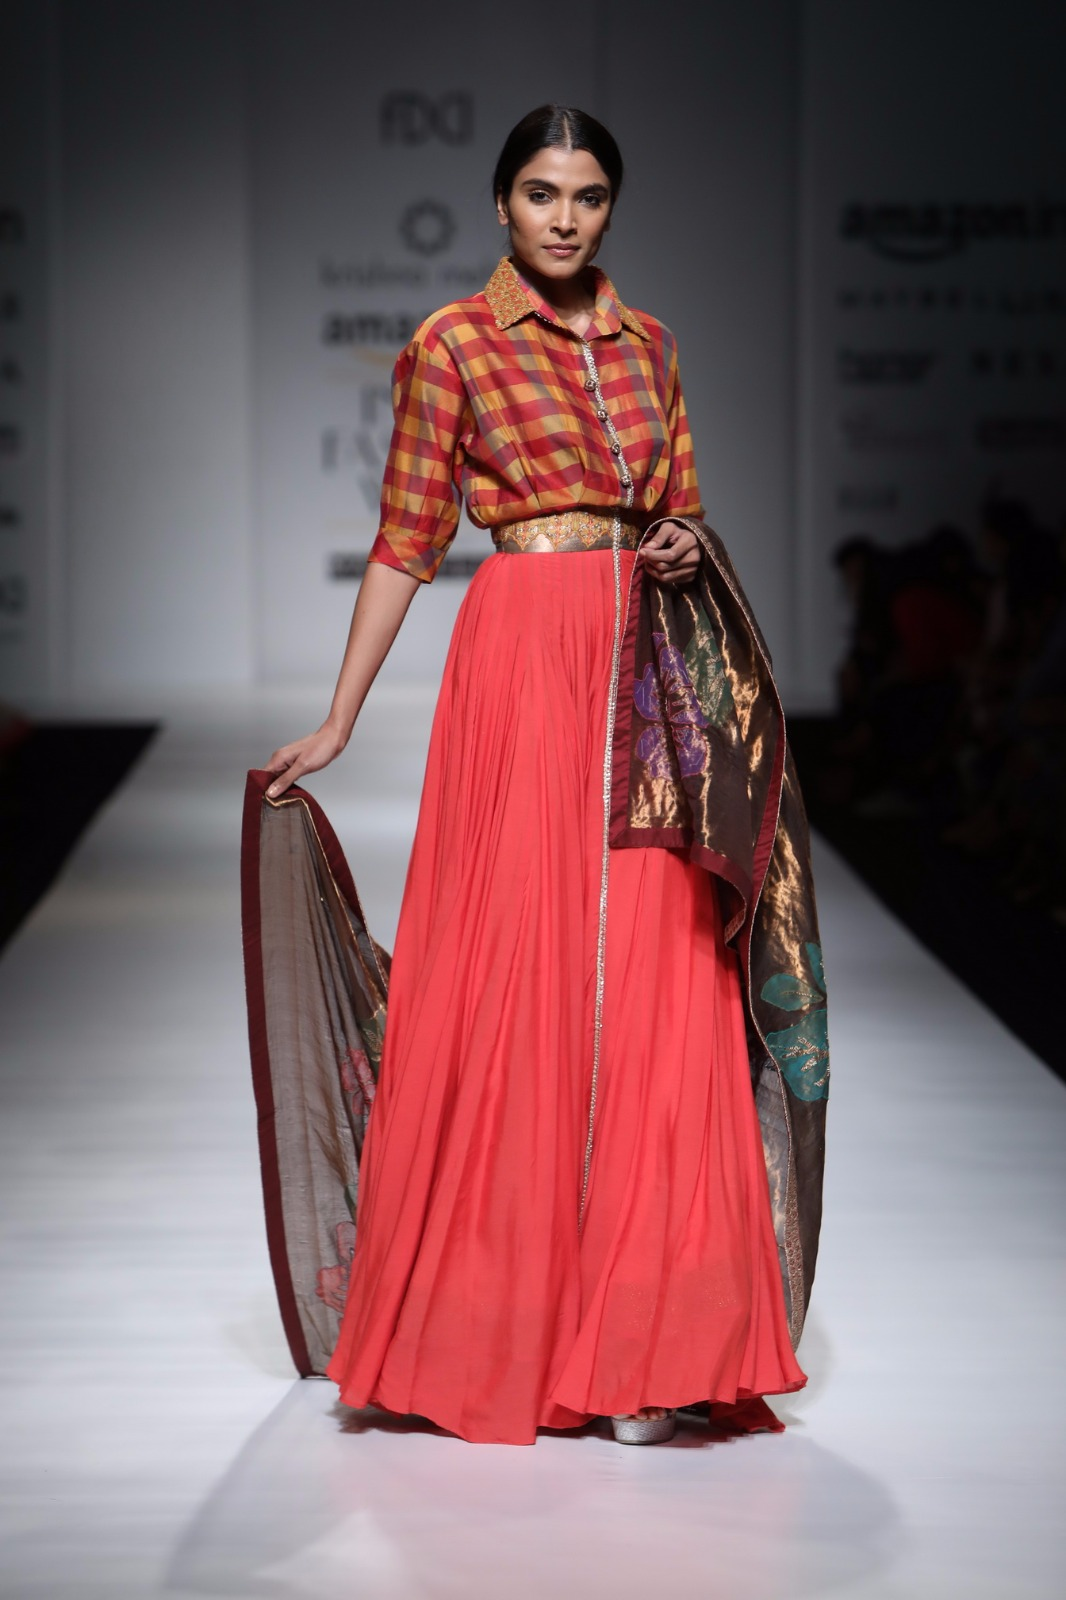 http://www.talksassy.com/wp-content/uploads/2017/03/Amazon-India-Fashion-Week-Autumn-Winter-2017-37.jpg